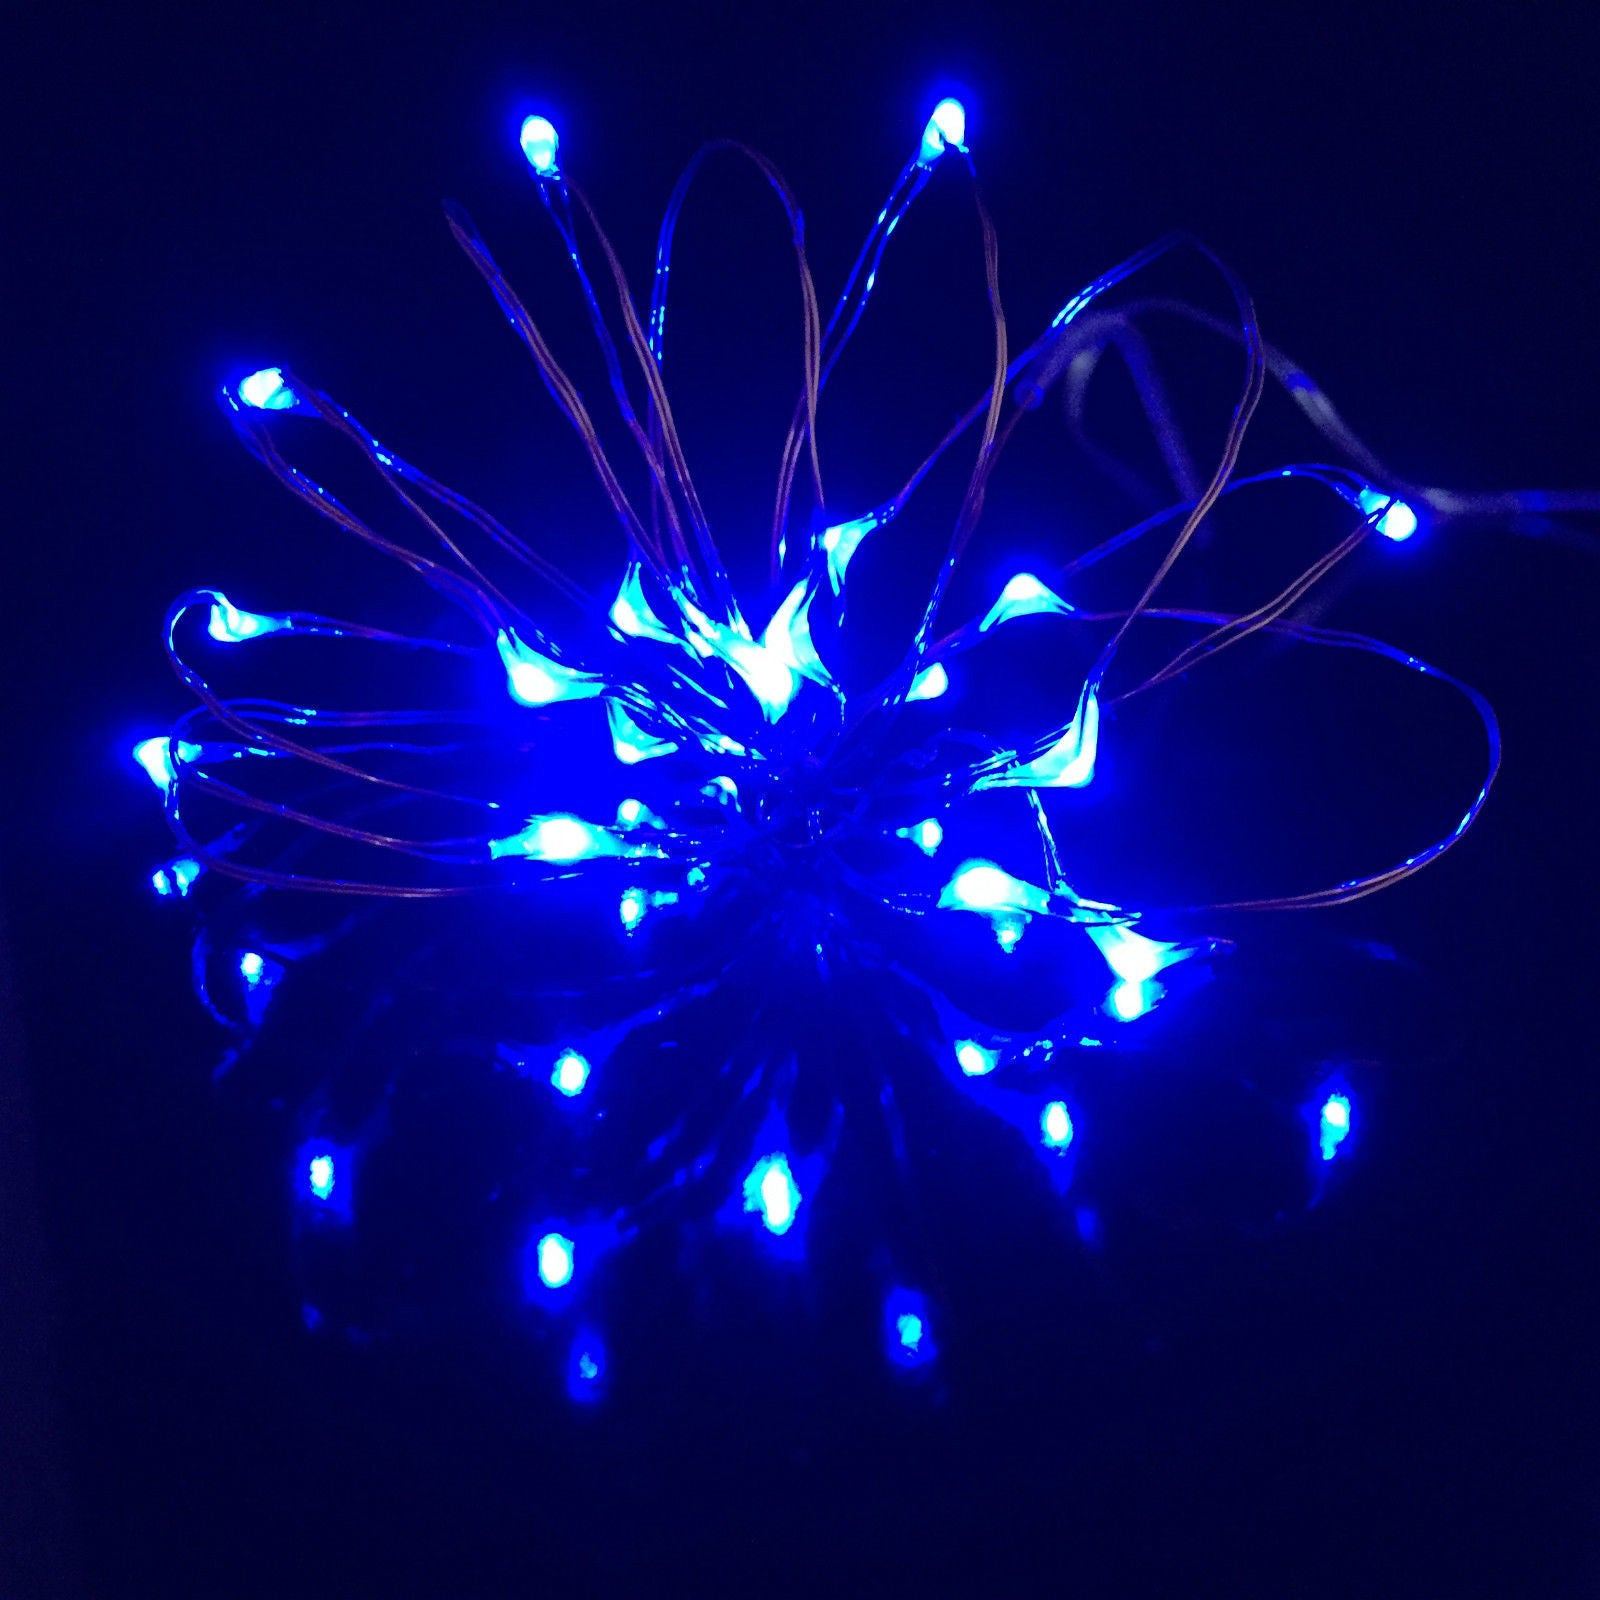 20 micro led lights cr2032 battery operated fairy light decorations co cheshire home garden ltd. Black Bedroom Furniture Sets. Home Design Ideas